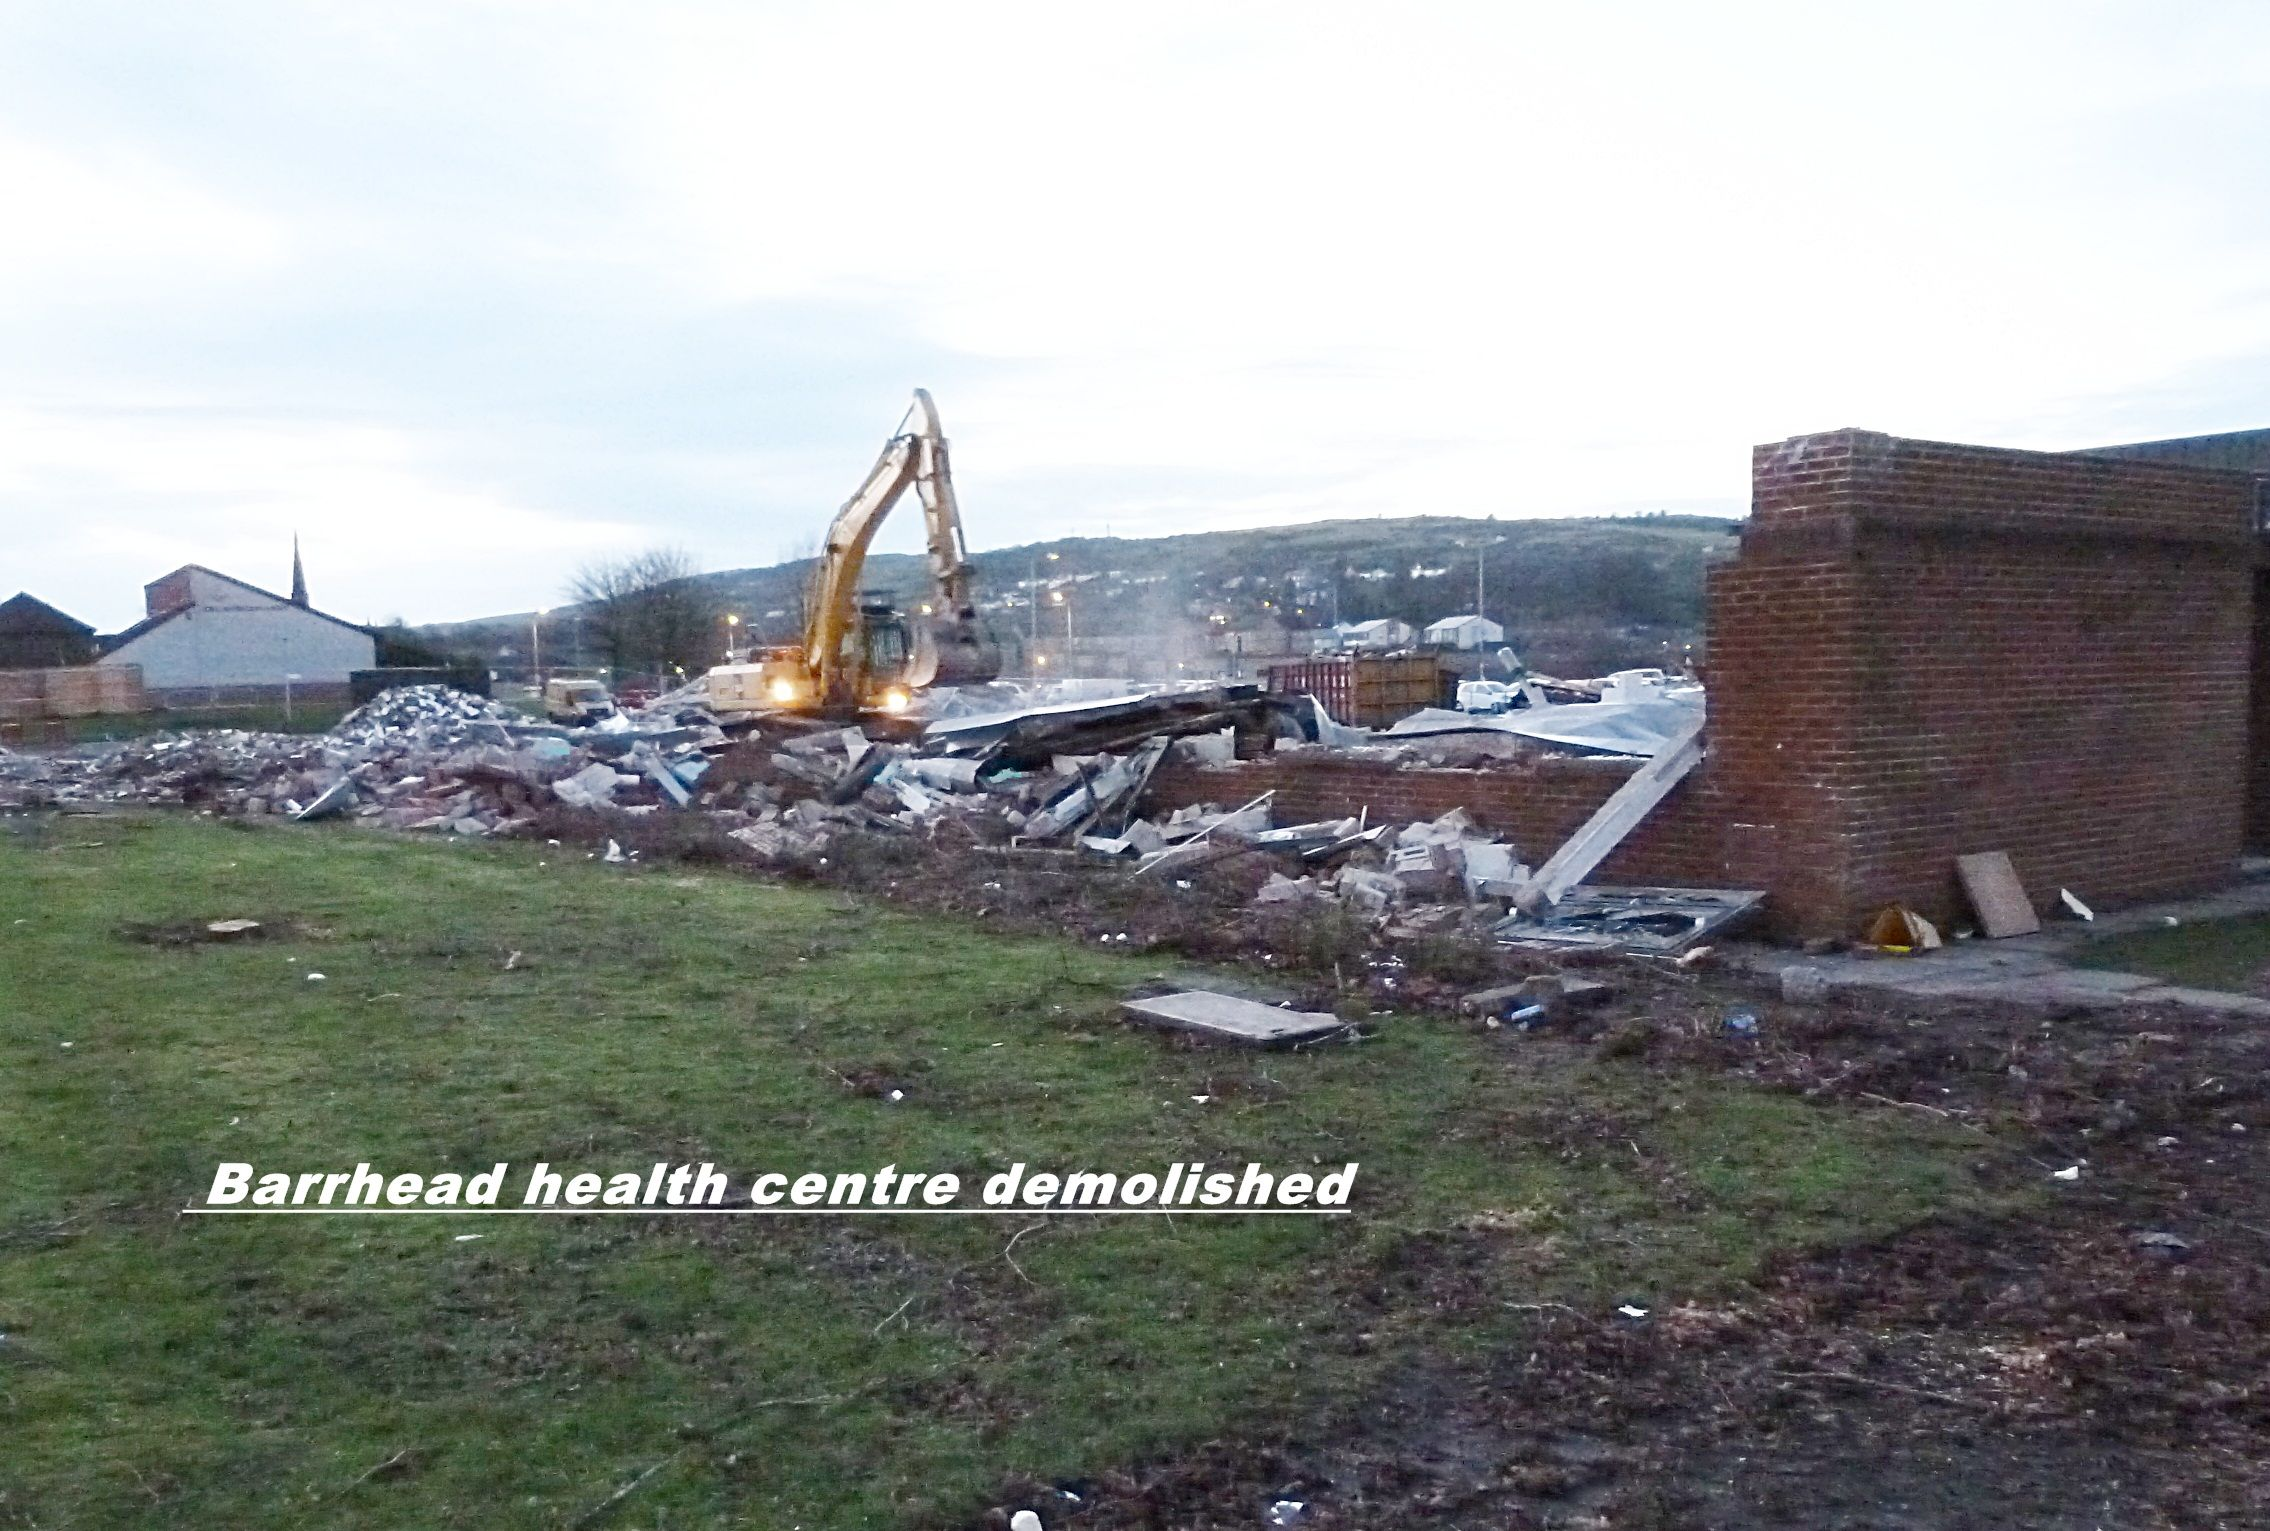 Old health centre demolished, Barrhead. (With images